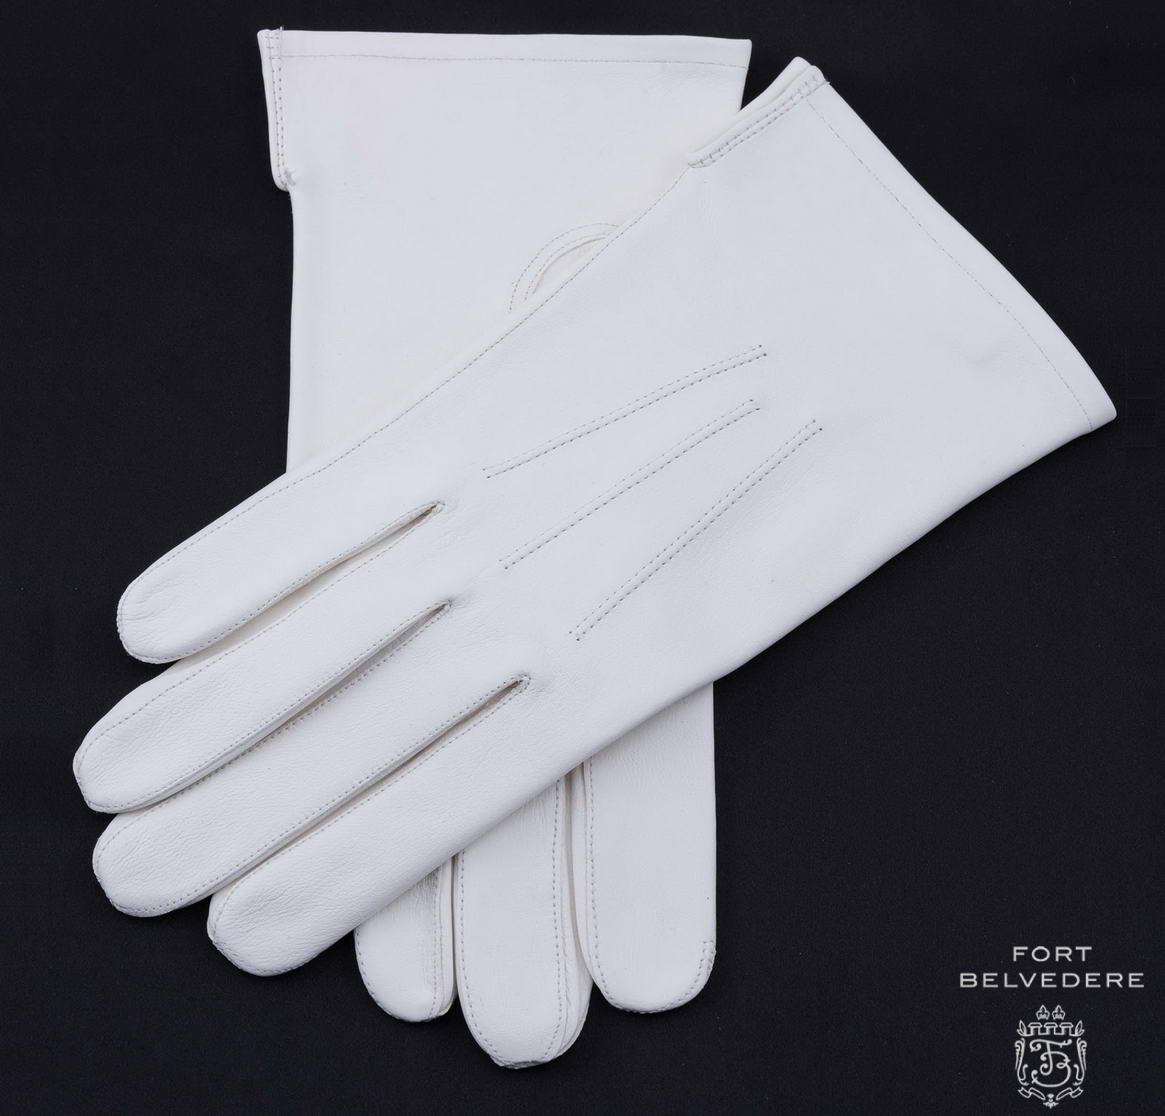 The Royals are luxurious leather dress gloves for men with long fingers. Made with buttery smooth deerskin, The Royals are a cut above the rest. Perfect for any man of style, whether he be headed to the office, or out for a night on the town.